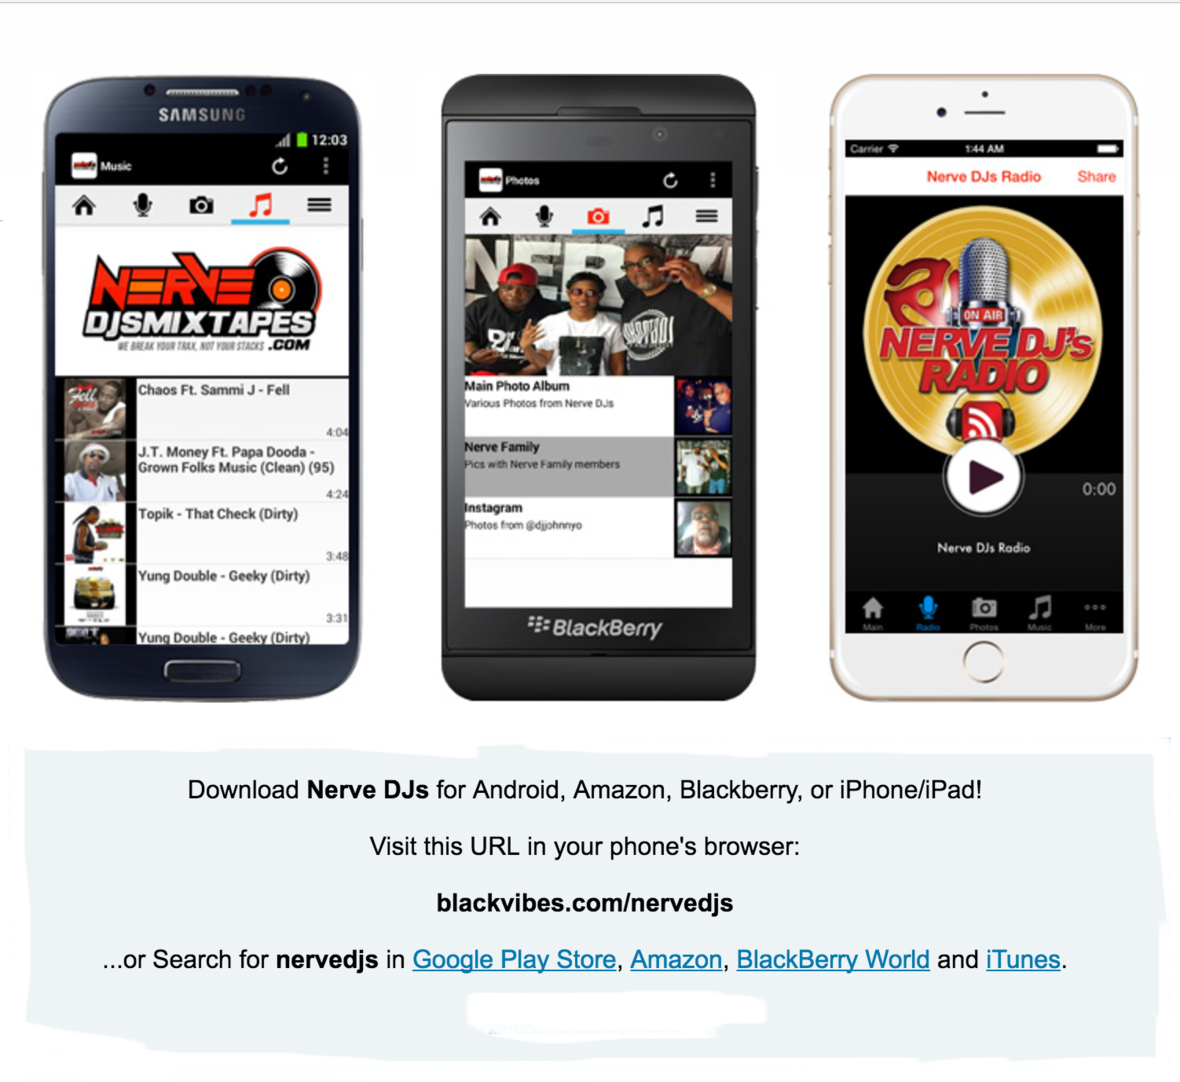 Download The Nerve Djs App Promo